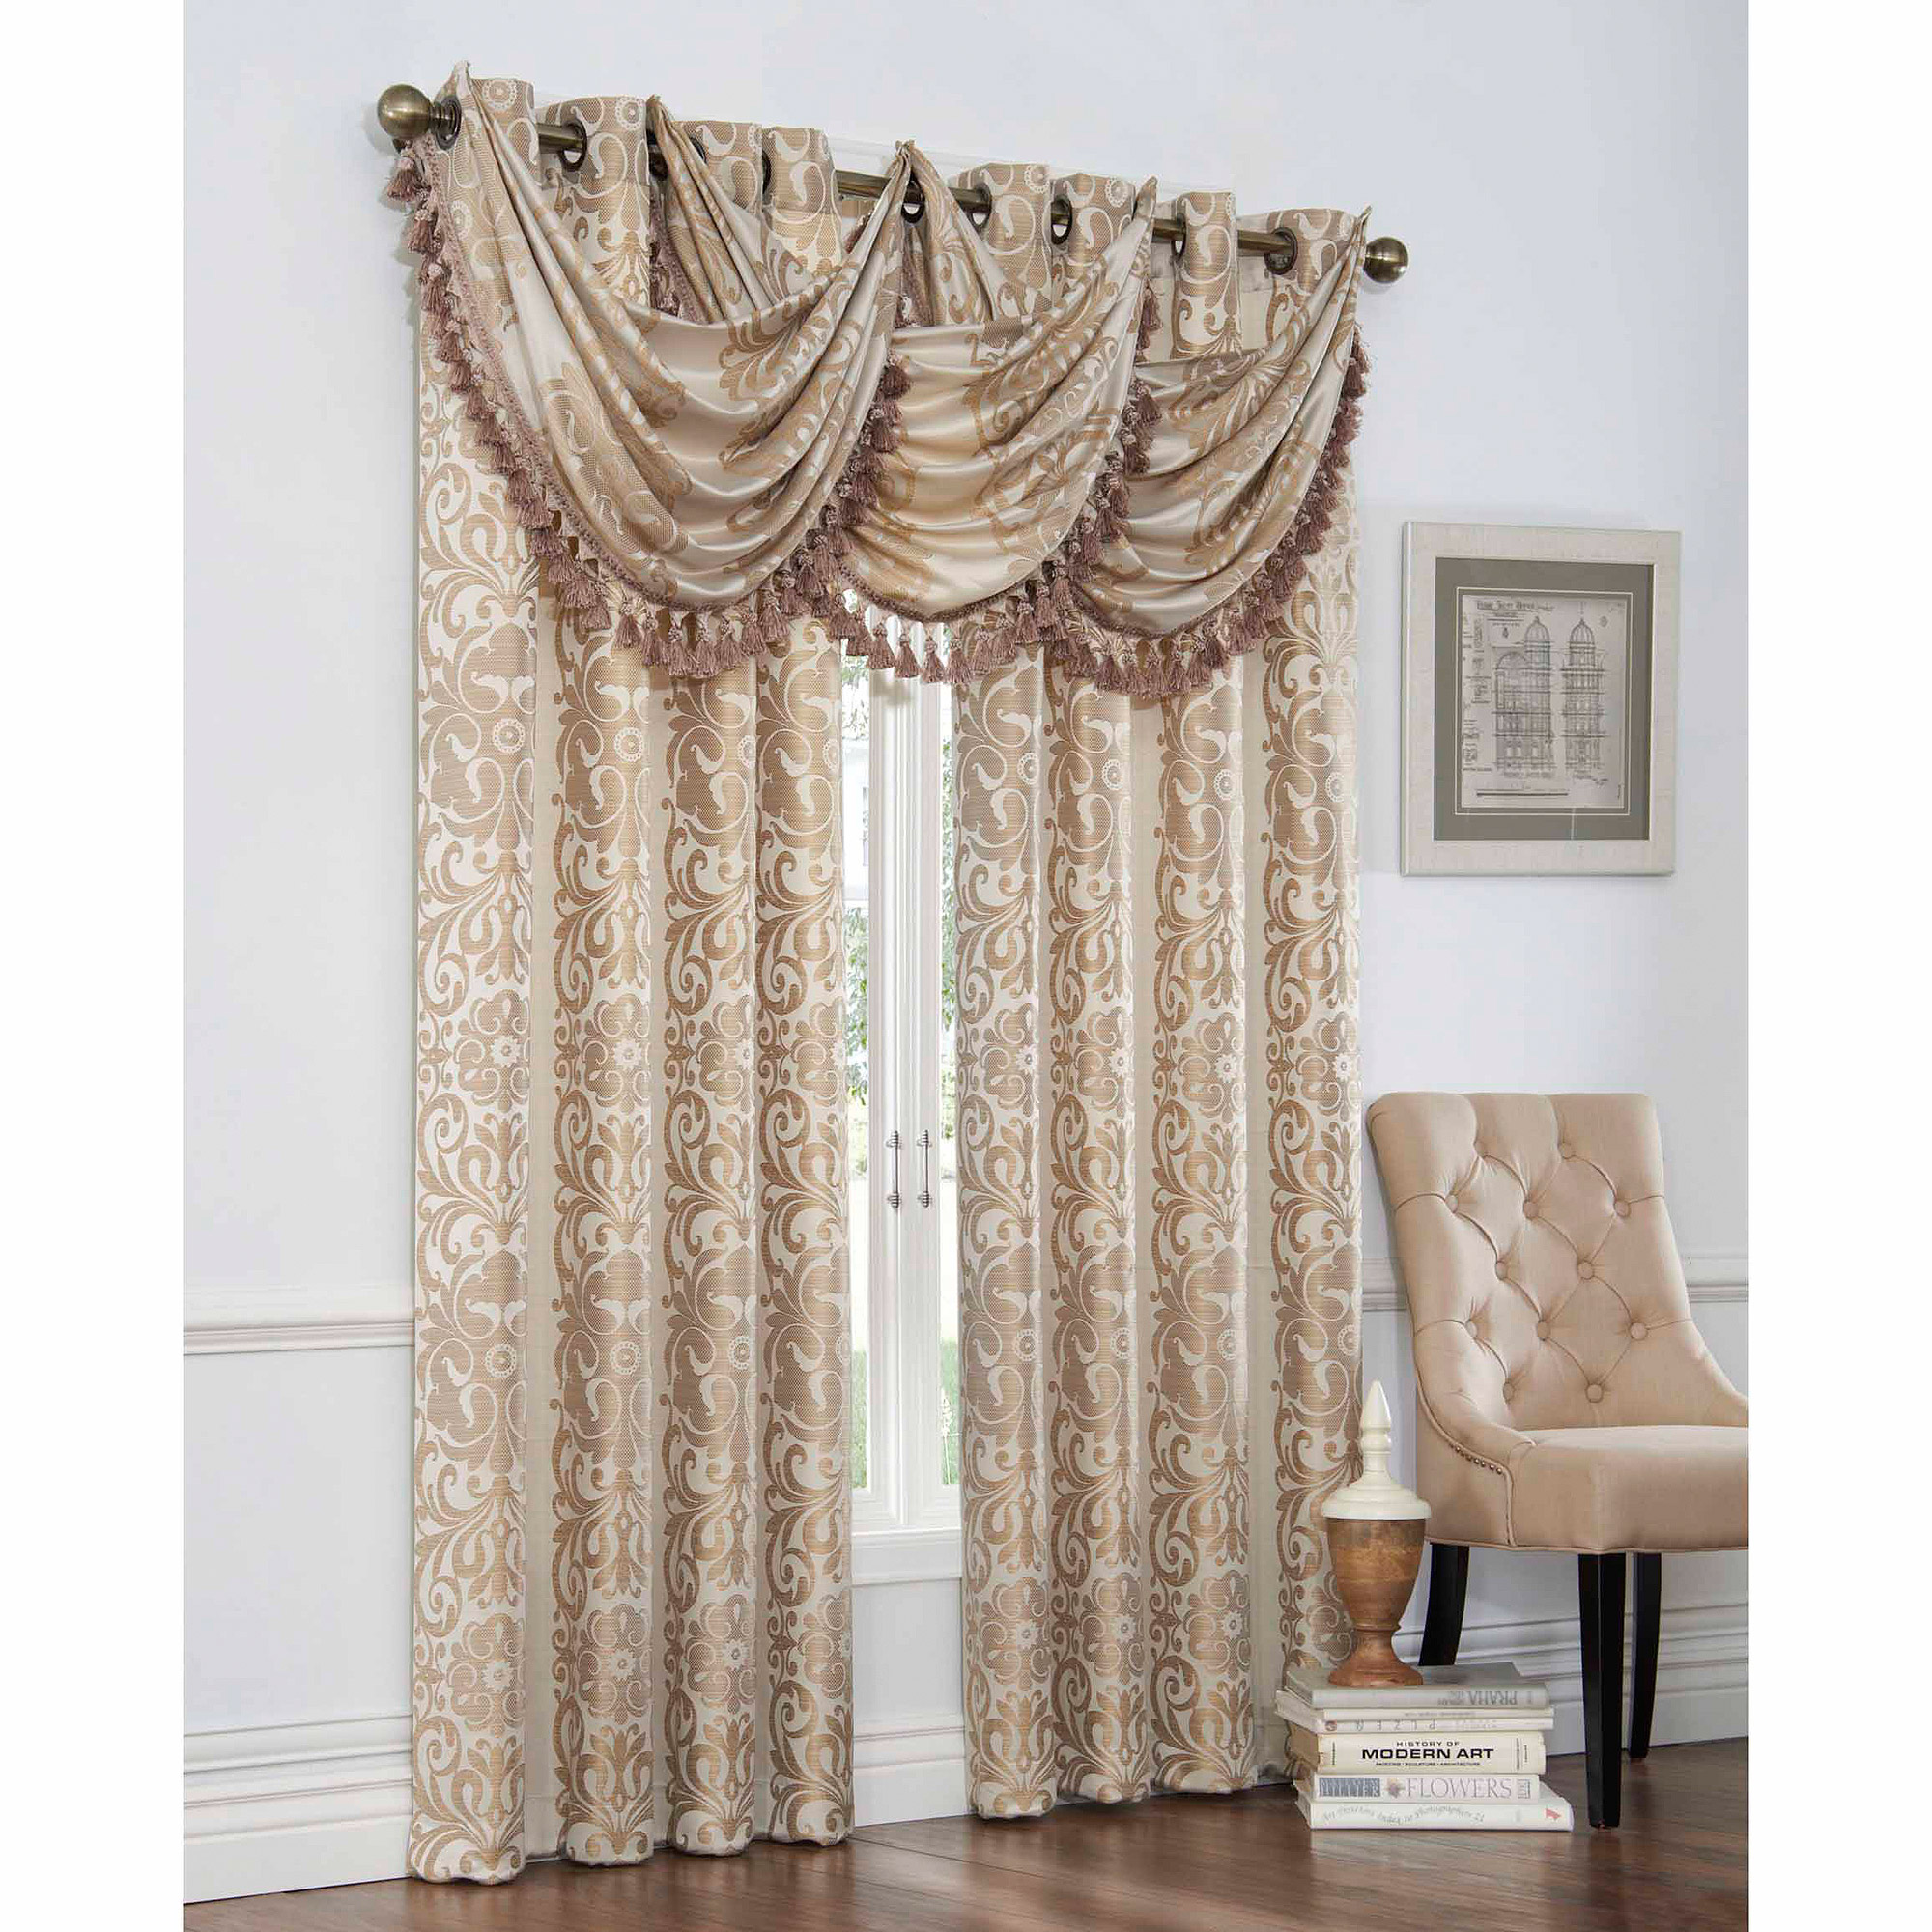 Walmart Curtains For Living Room Mainstays Microfiber Curtain Panel With Tieback Walmartcom